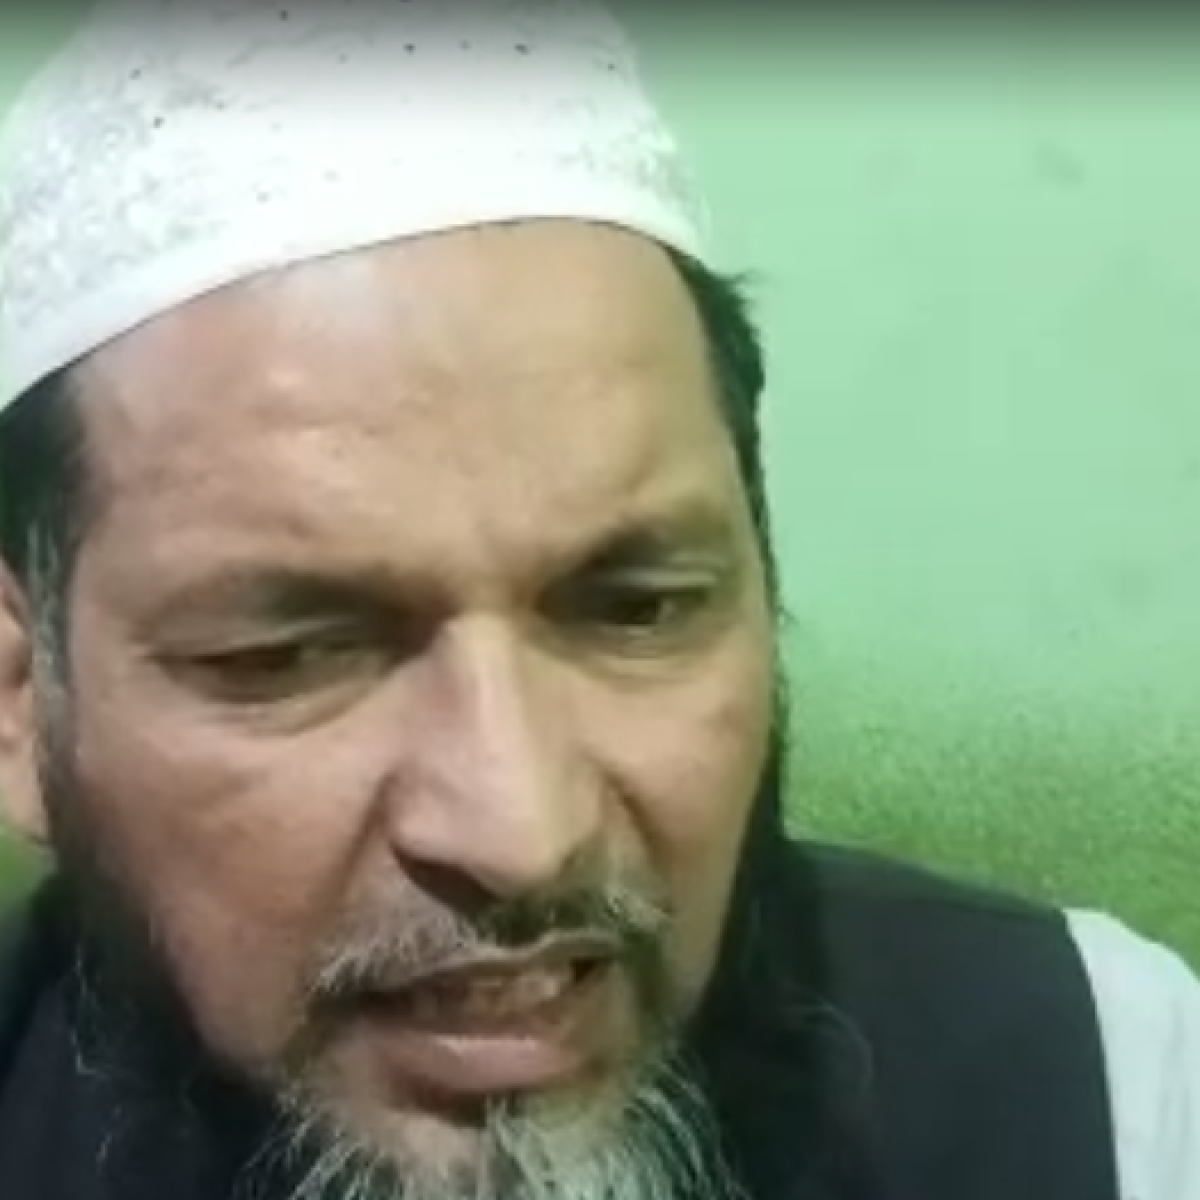 West Bengal: Imam in Asansol appeals for peace in Northeast Delhi